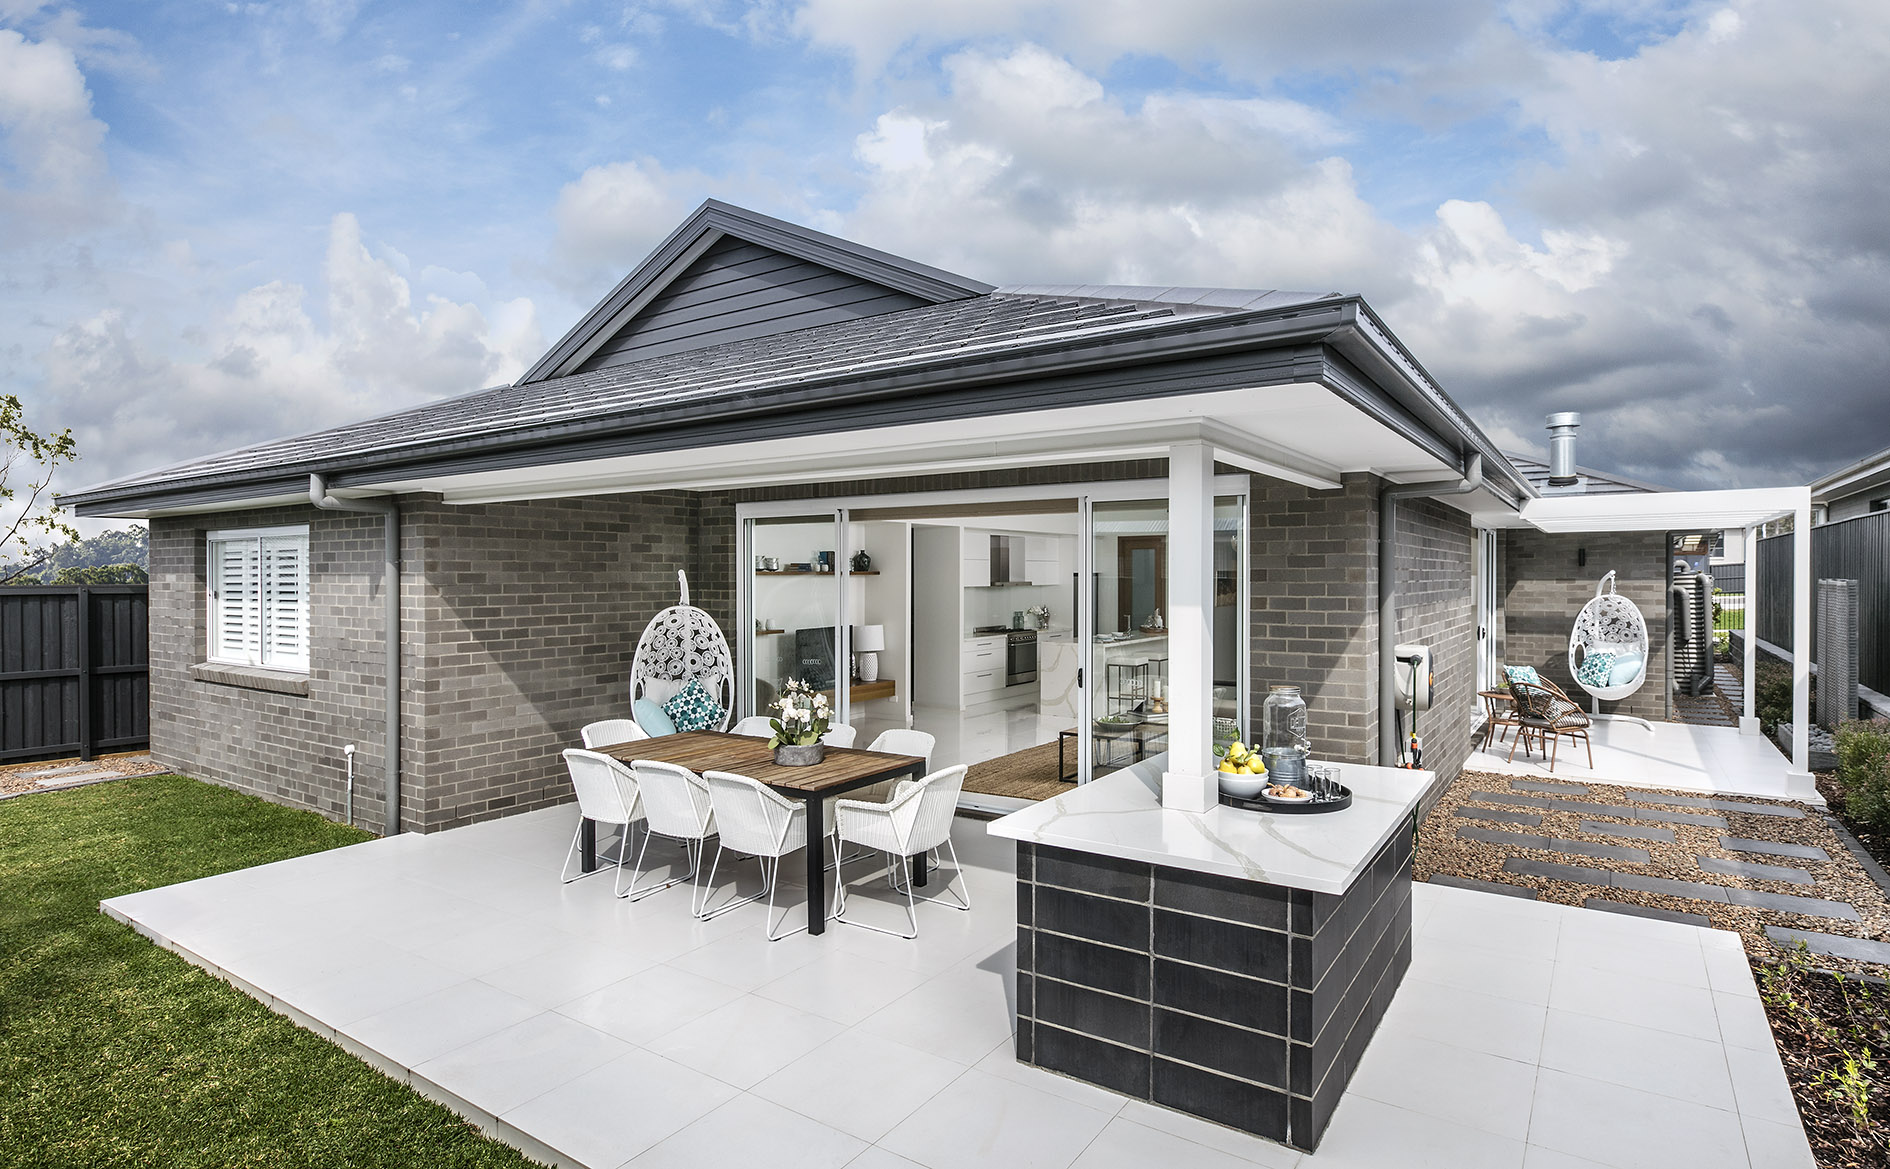 The latest trends in new homes